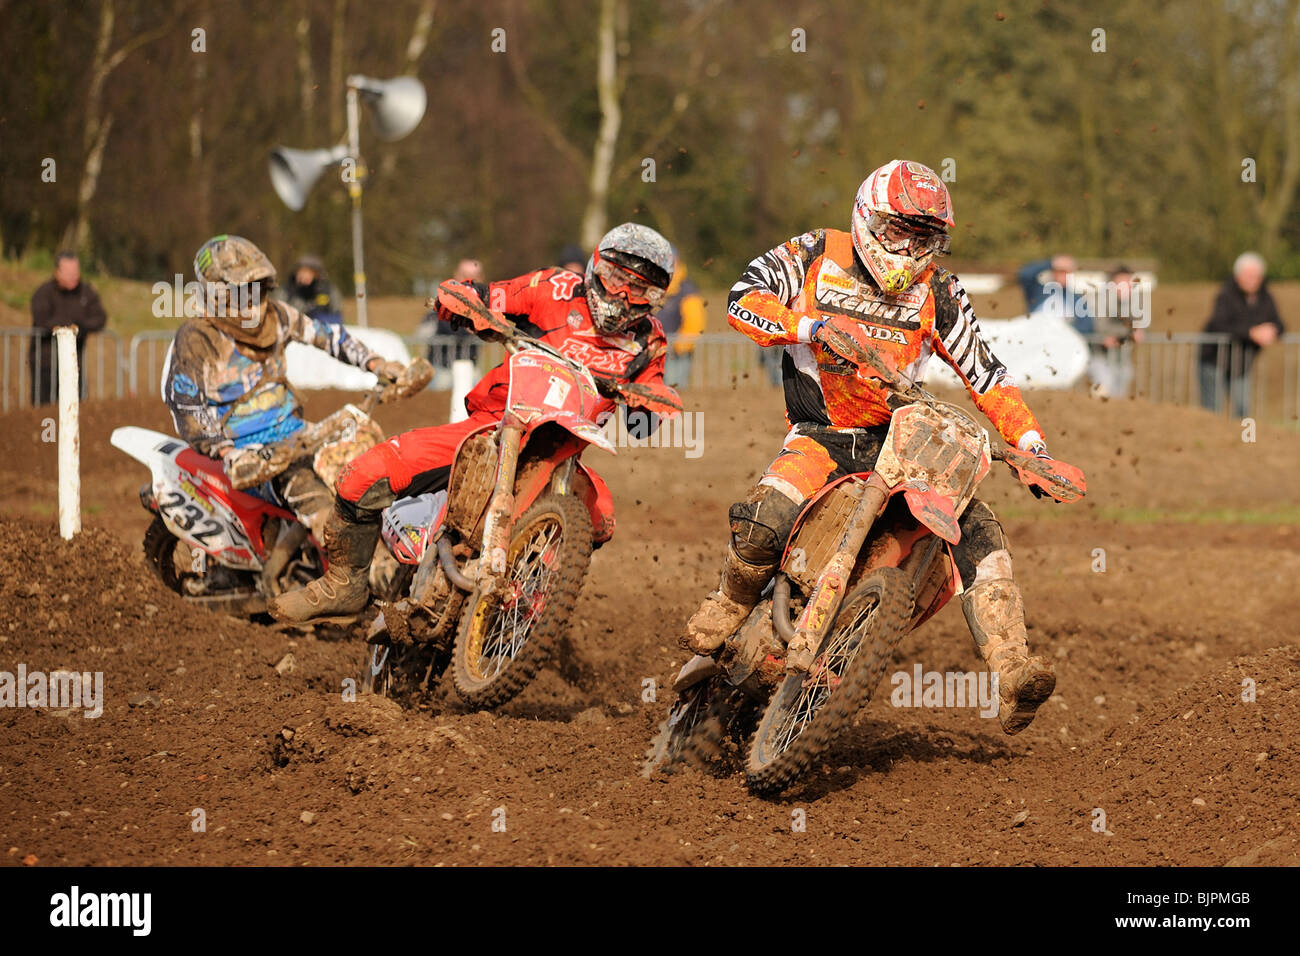 Mickael Pichon (101) at the 2nd round of the Maxxis British Motocross Championship at Mallory Park on the 21st March - Stock Image